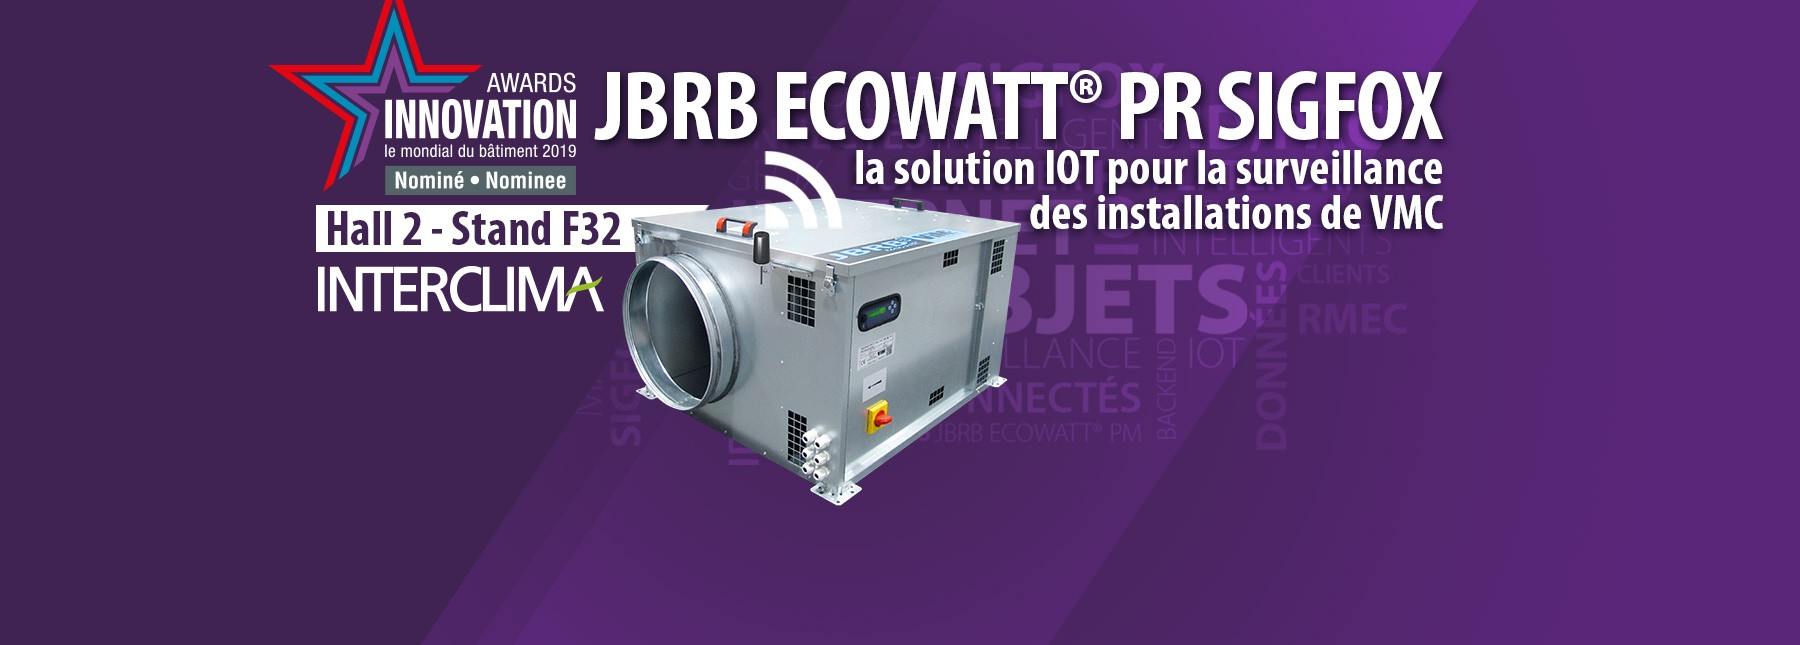 JBRB ECOWATT PR SIGFOX nominé aux Awards INTERCLIMA 2019